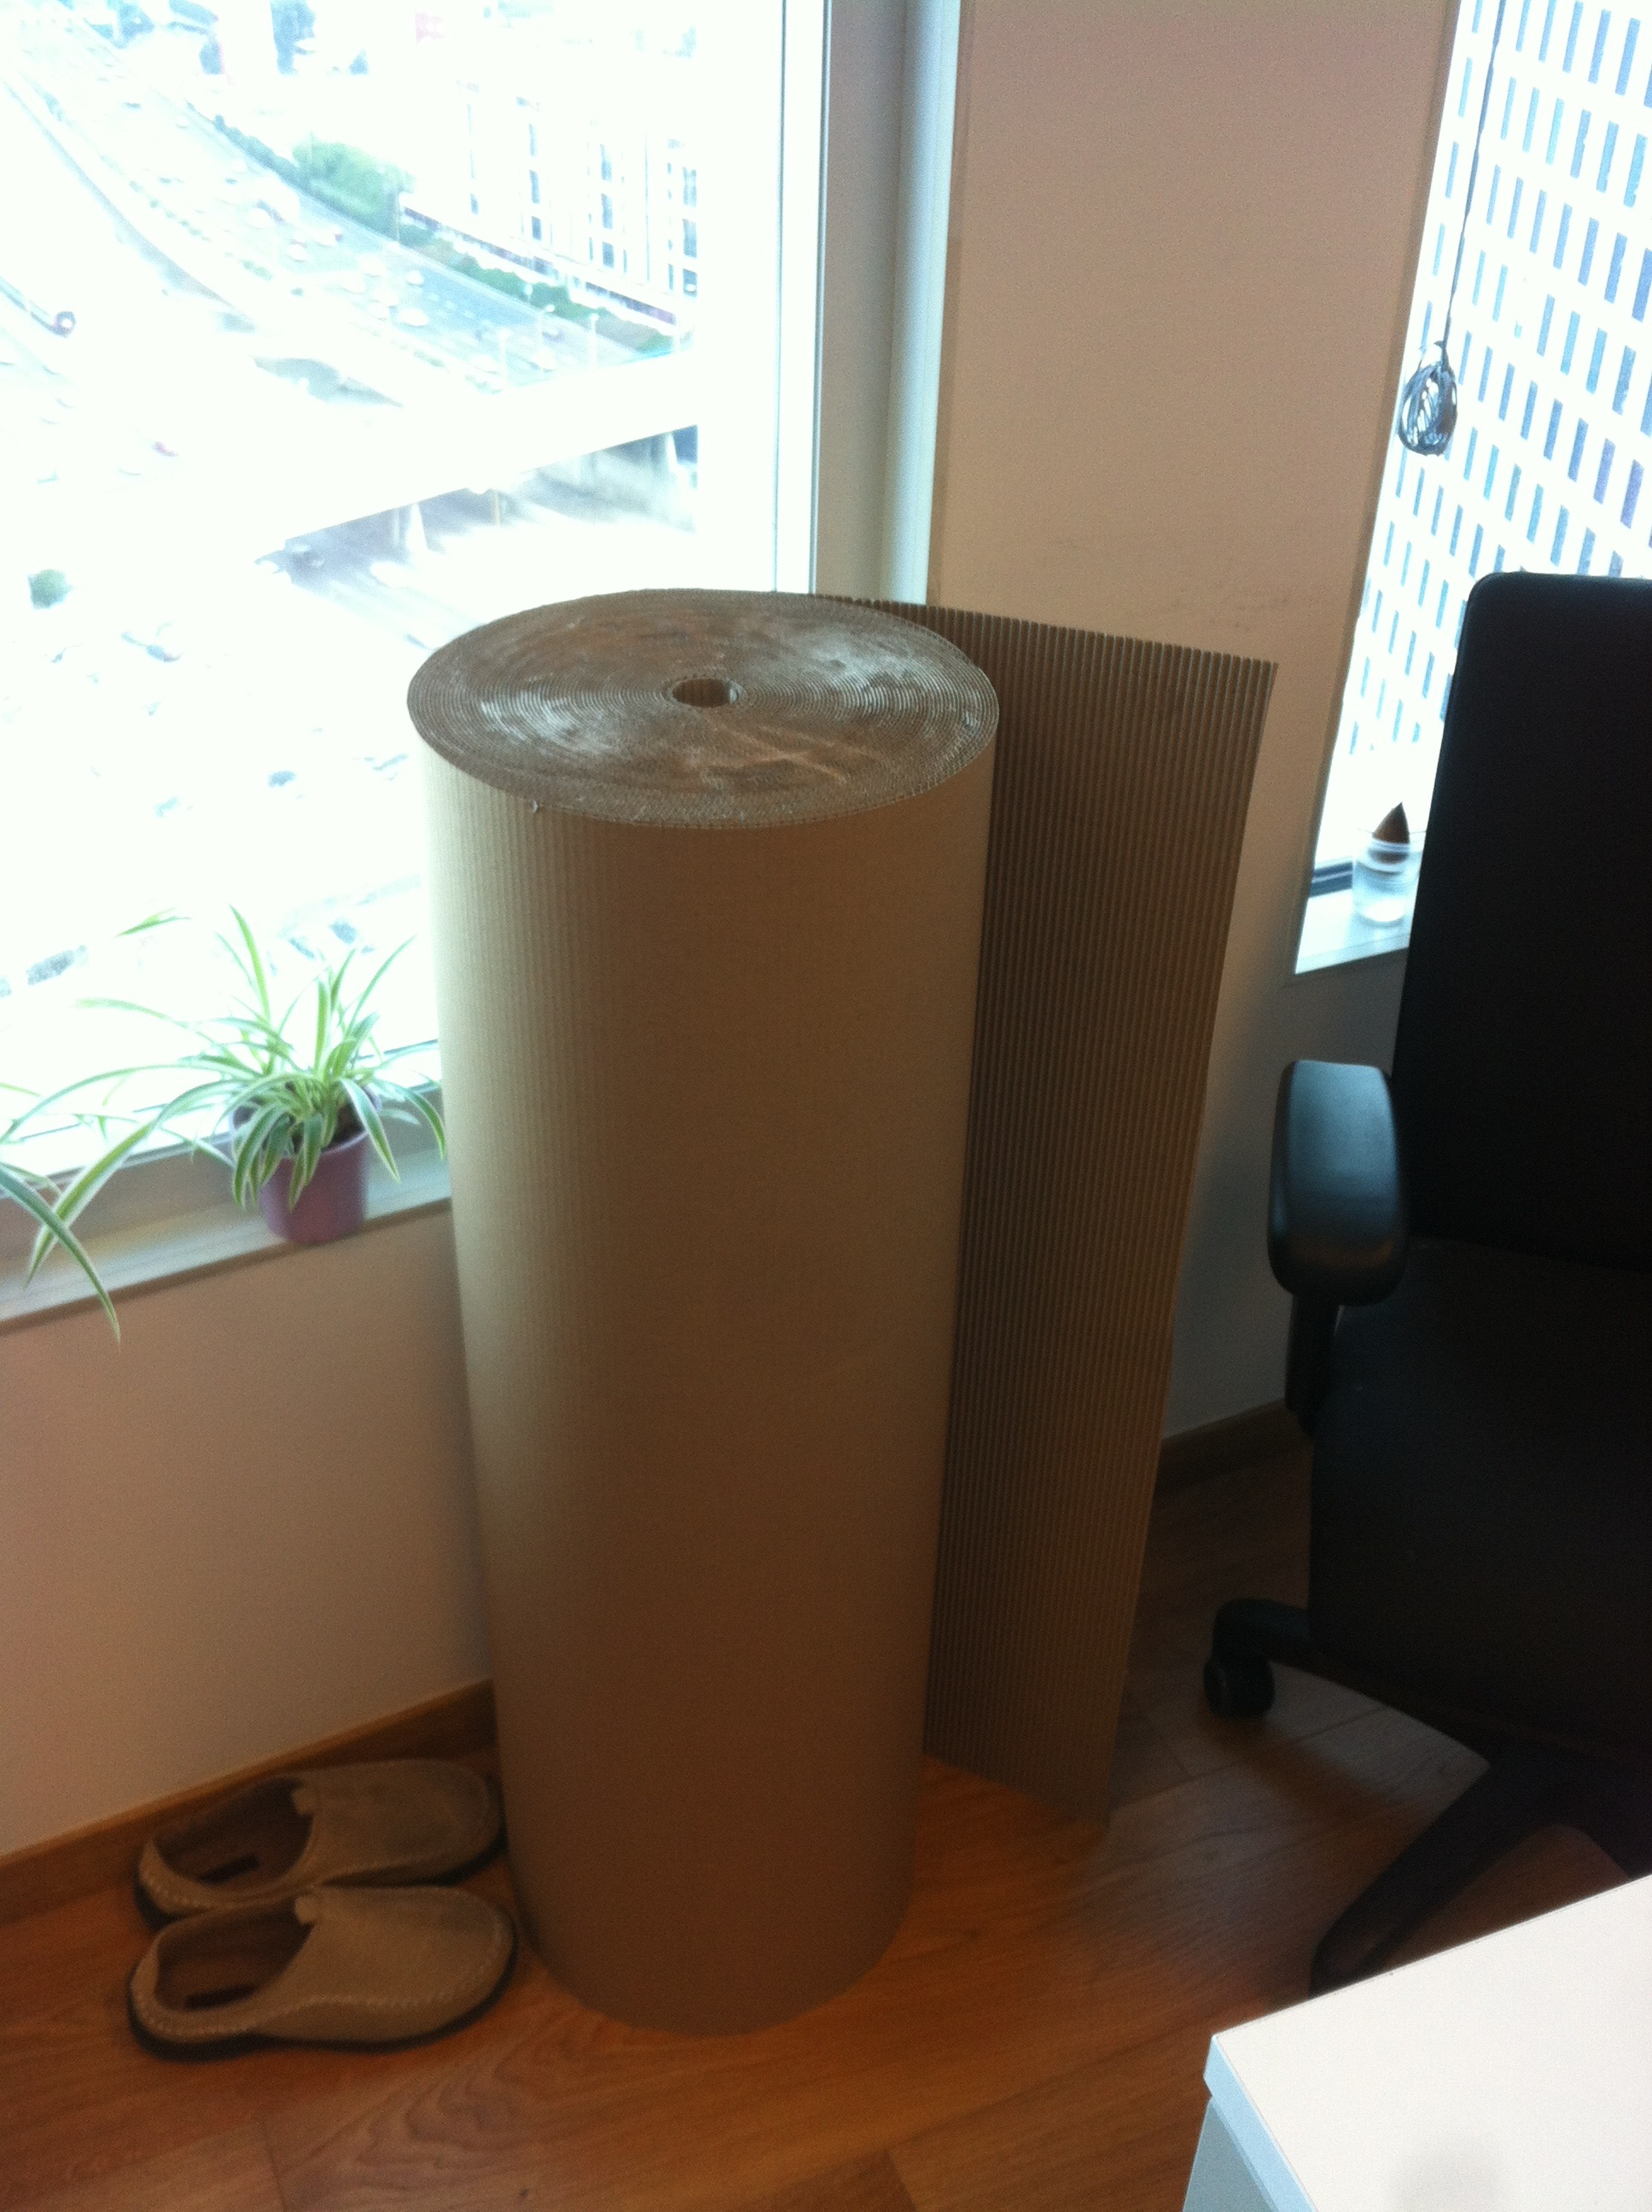 Picture of Strengthening It Via an Additional Cardboard